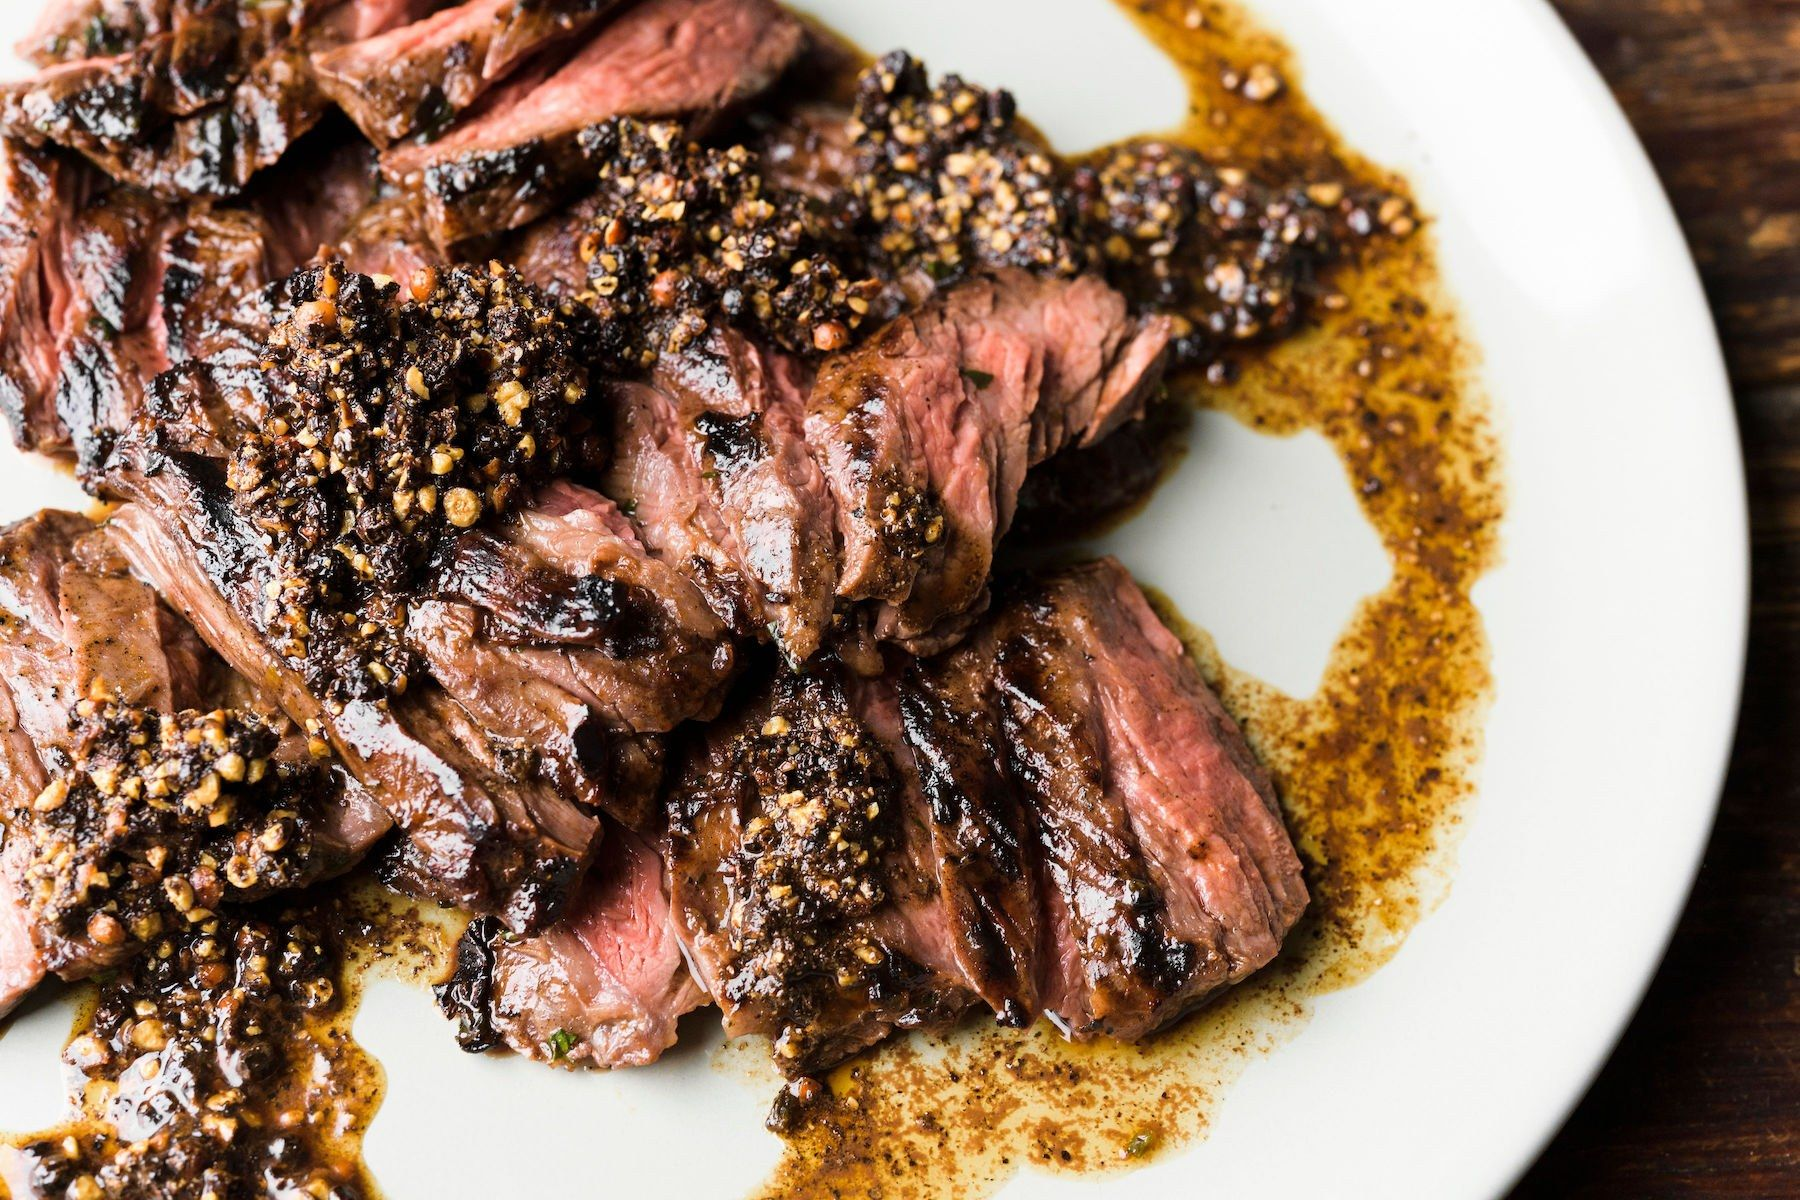 6 Myths About Cooking Steak to Avoid